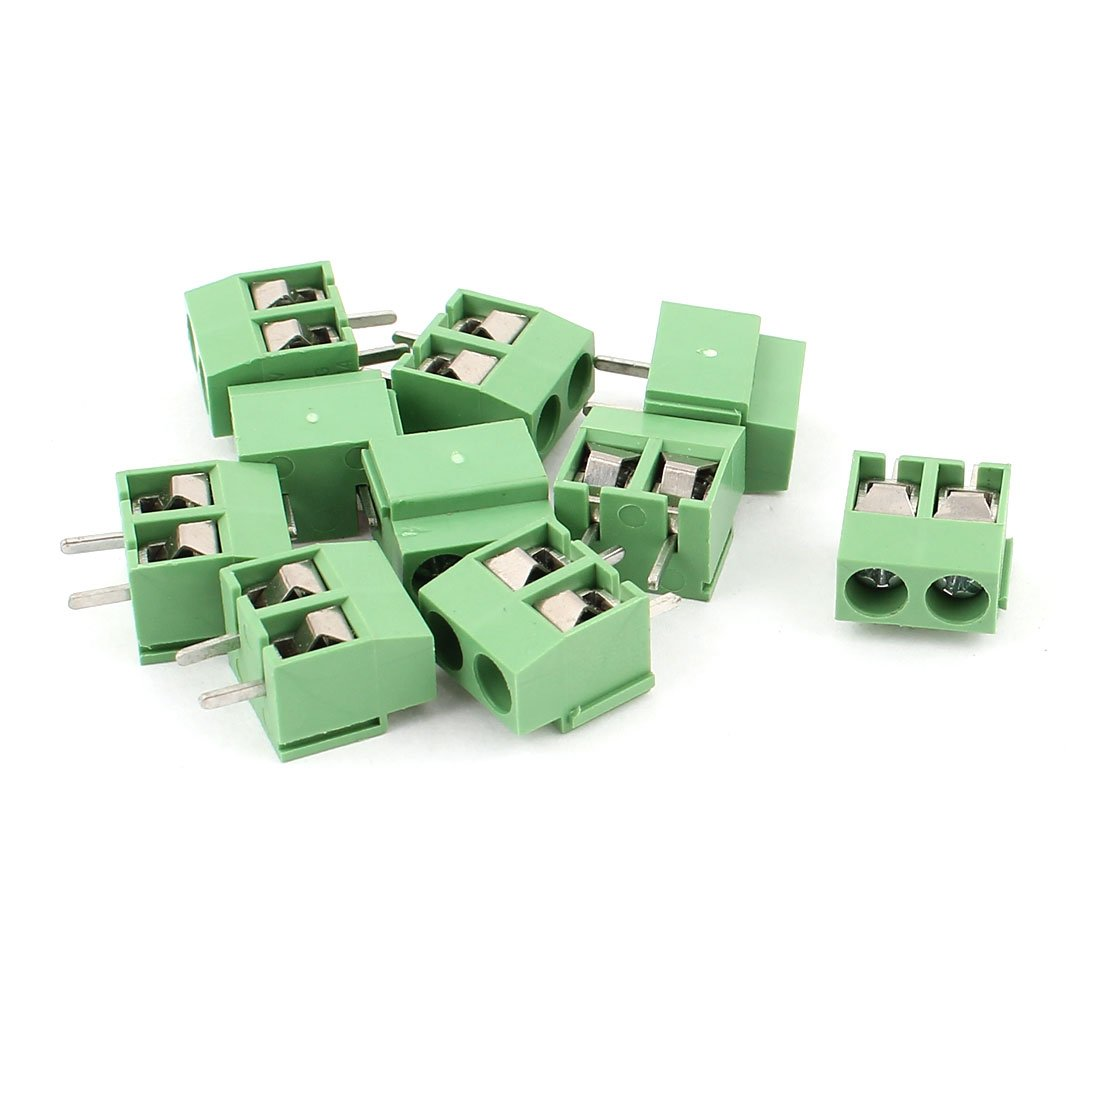 uxcell 10 Pcs AC 300V 10A PCB Screw Terminal Block Connector 4mm Pitch Green